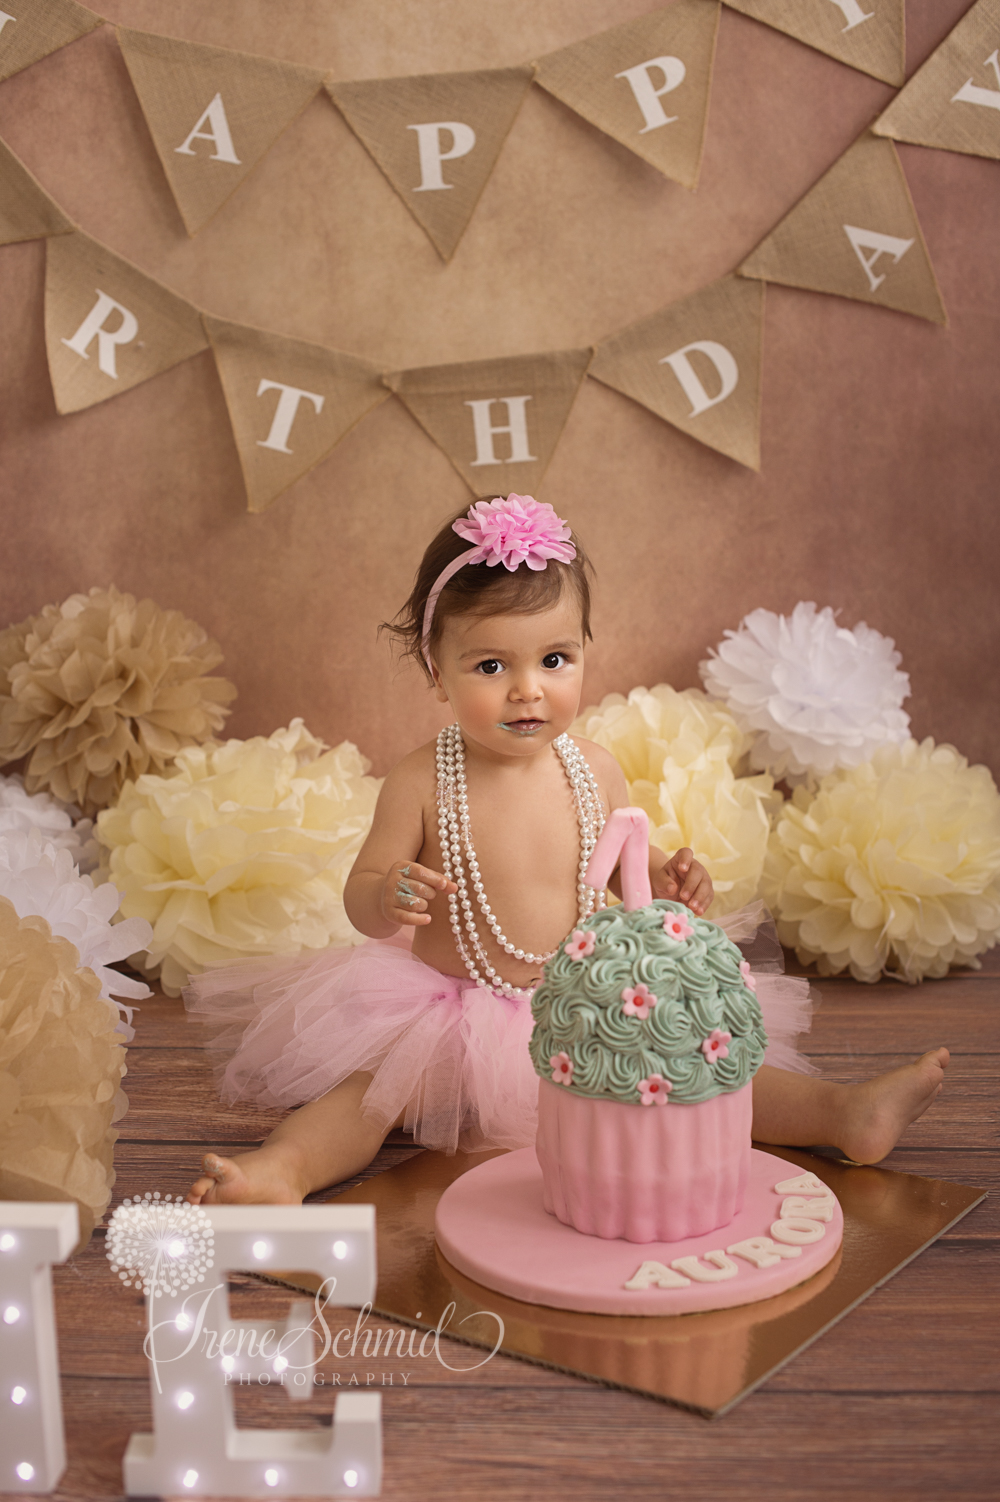 Cake Smash Shooting - Irene Schmid Photographie Winterthur